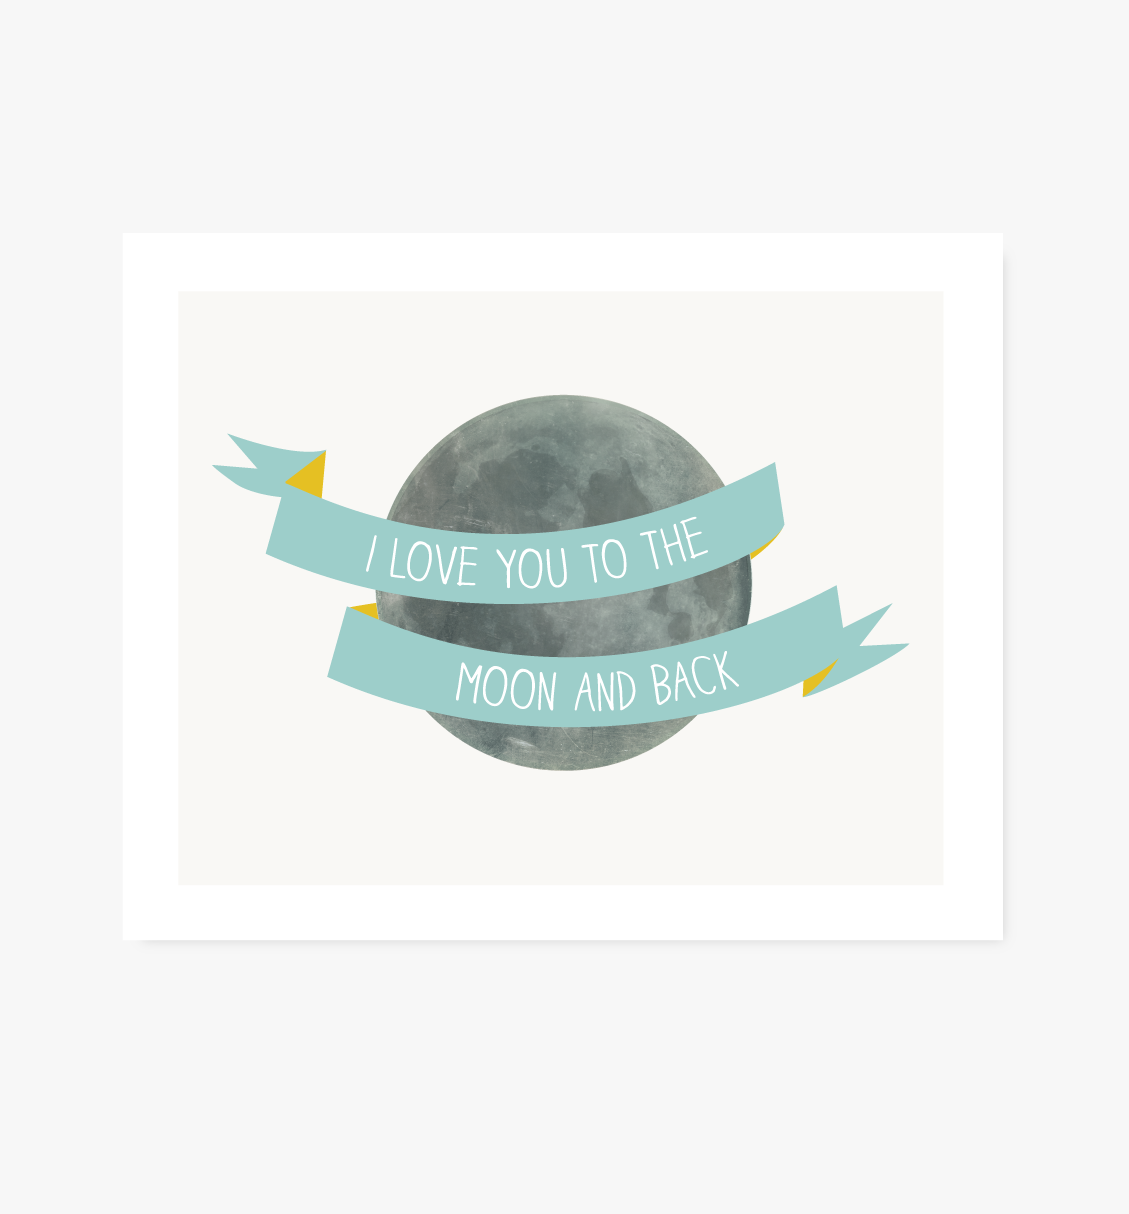 Love You to the Moon and Back print, blue